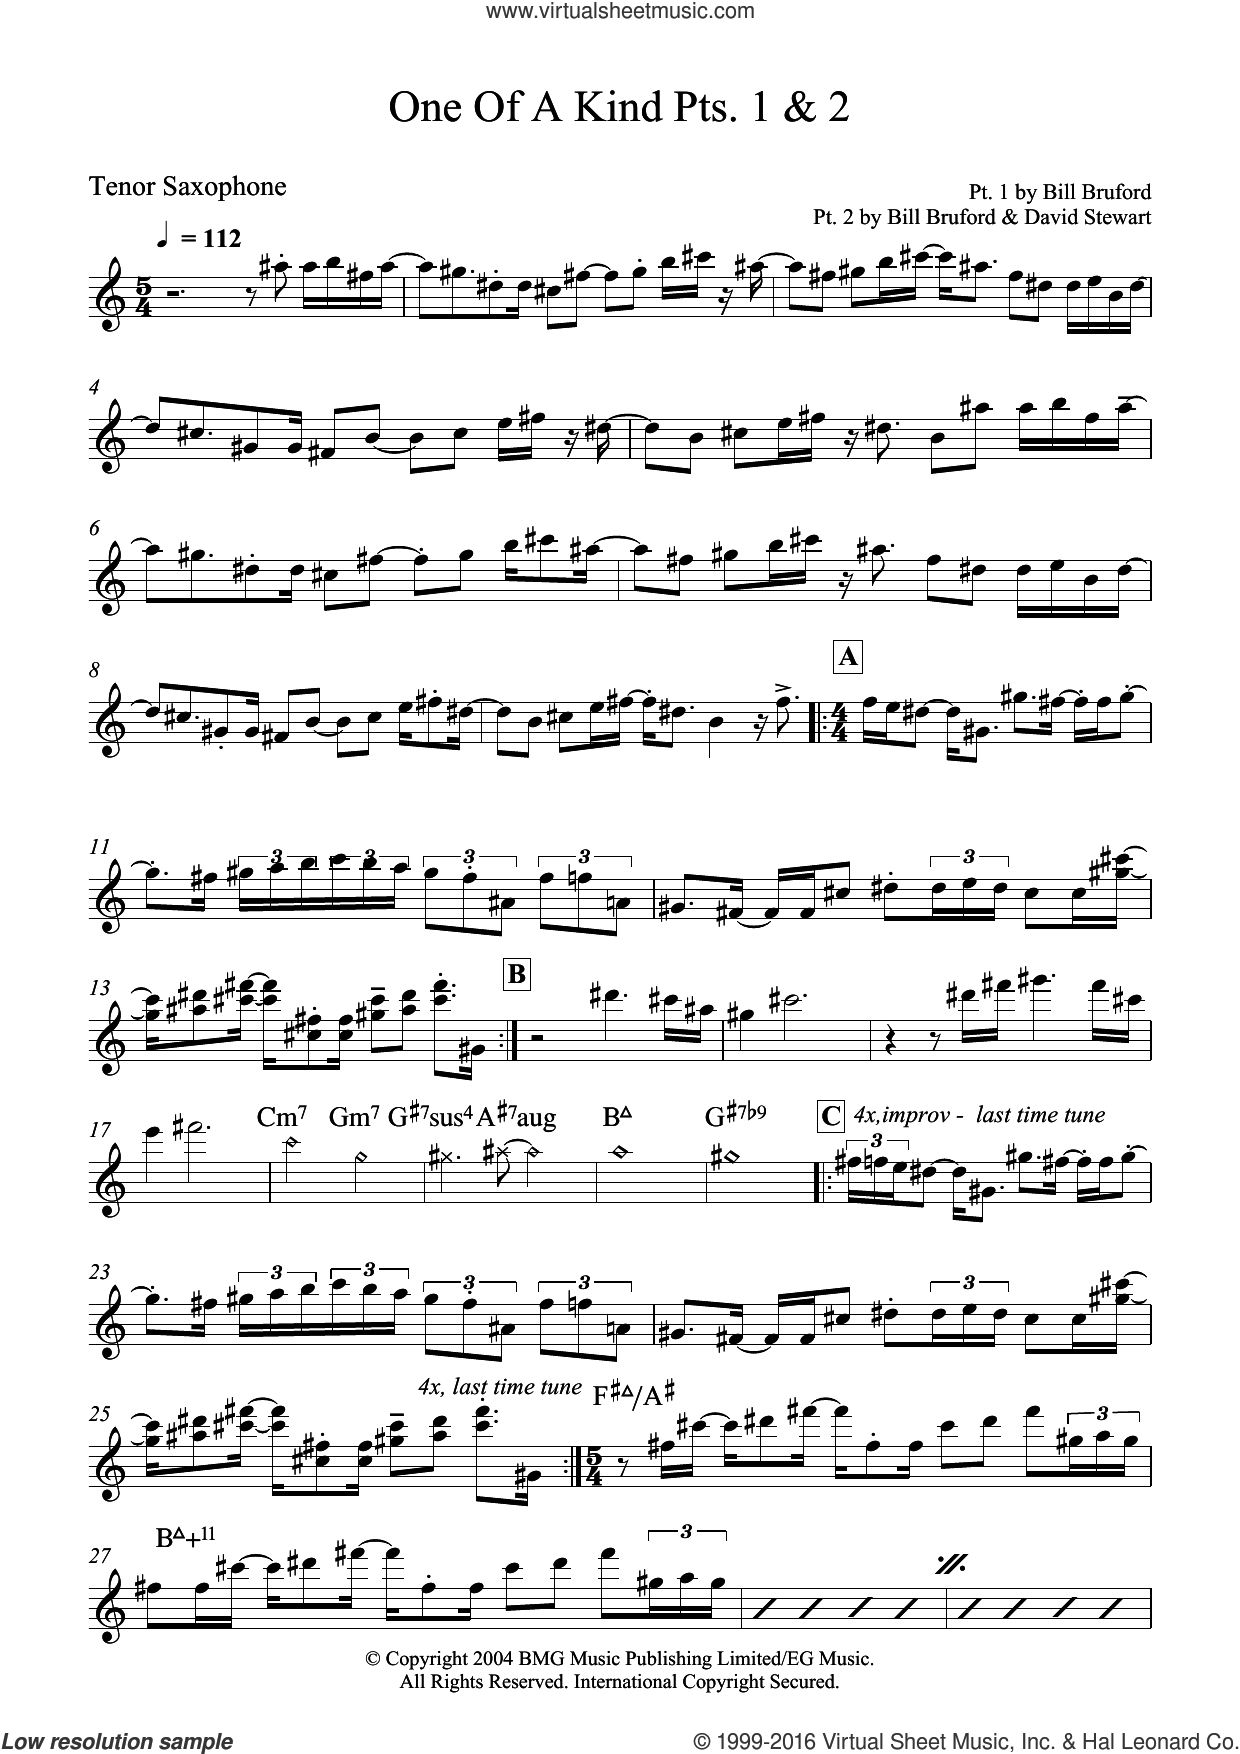 One Of A Kind Pts. 1 and 2 sheet music for tenor saxophone solo by Bill Bruford and Dave Stewart, intermediate skill level